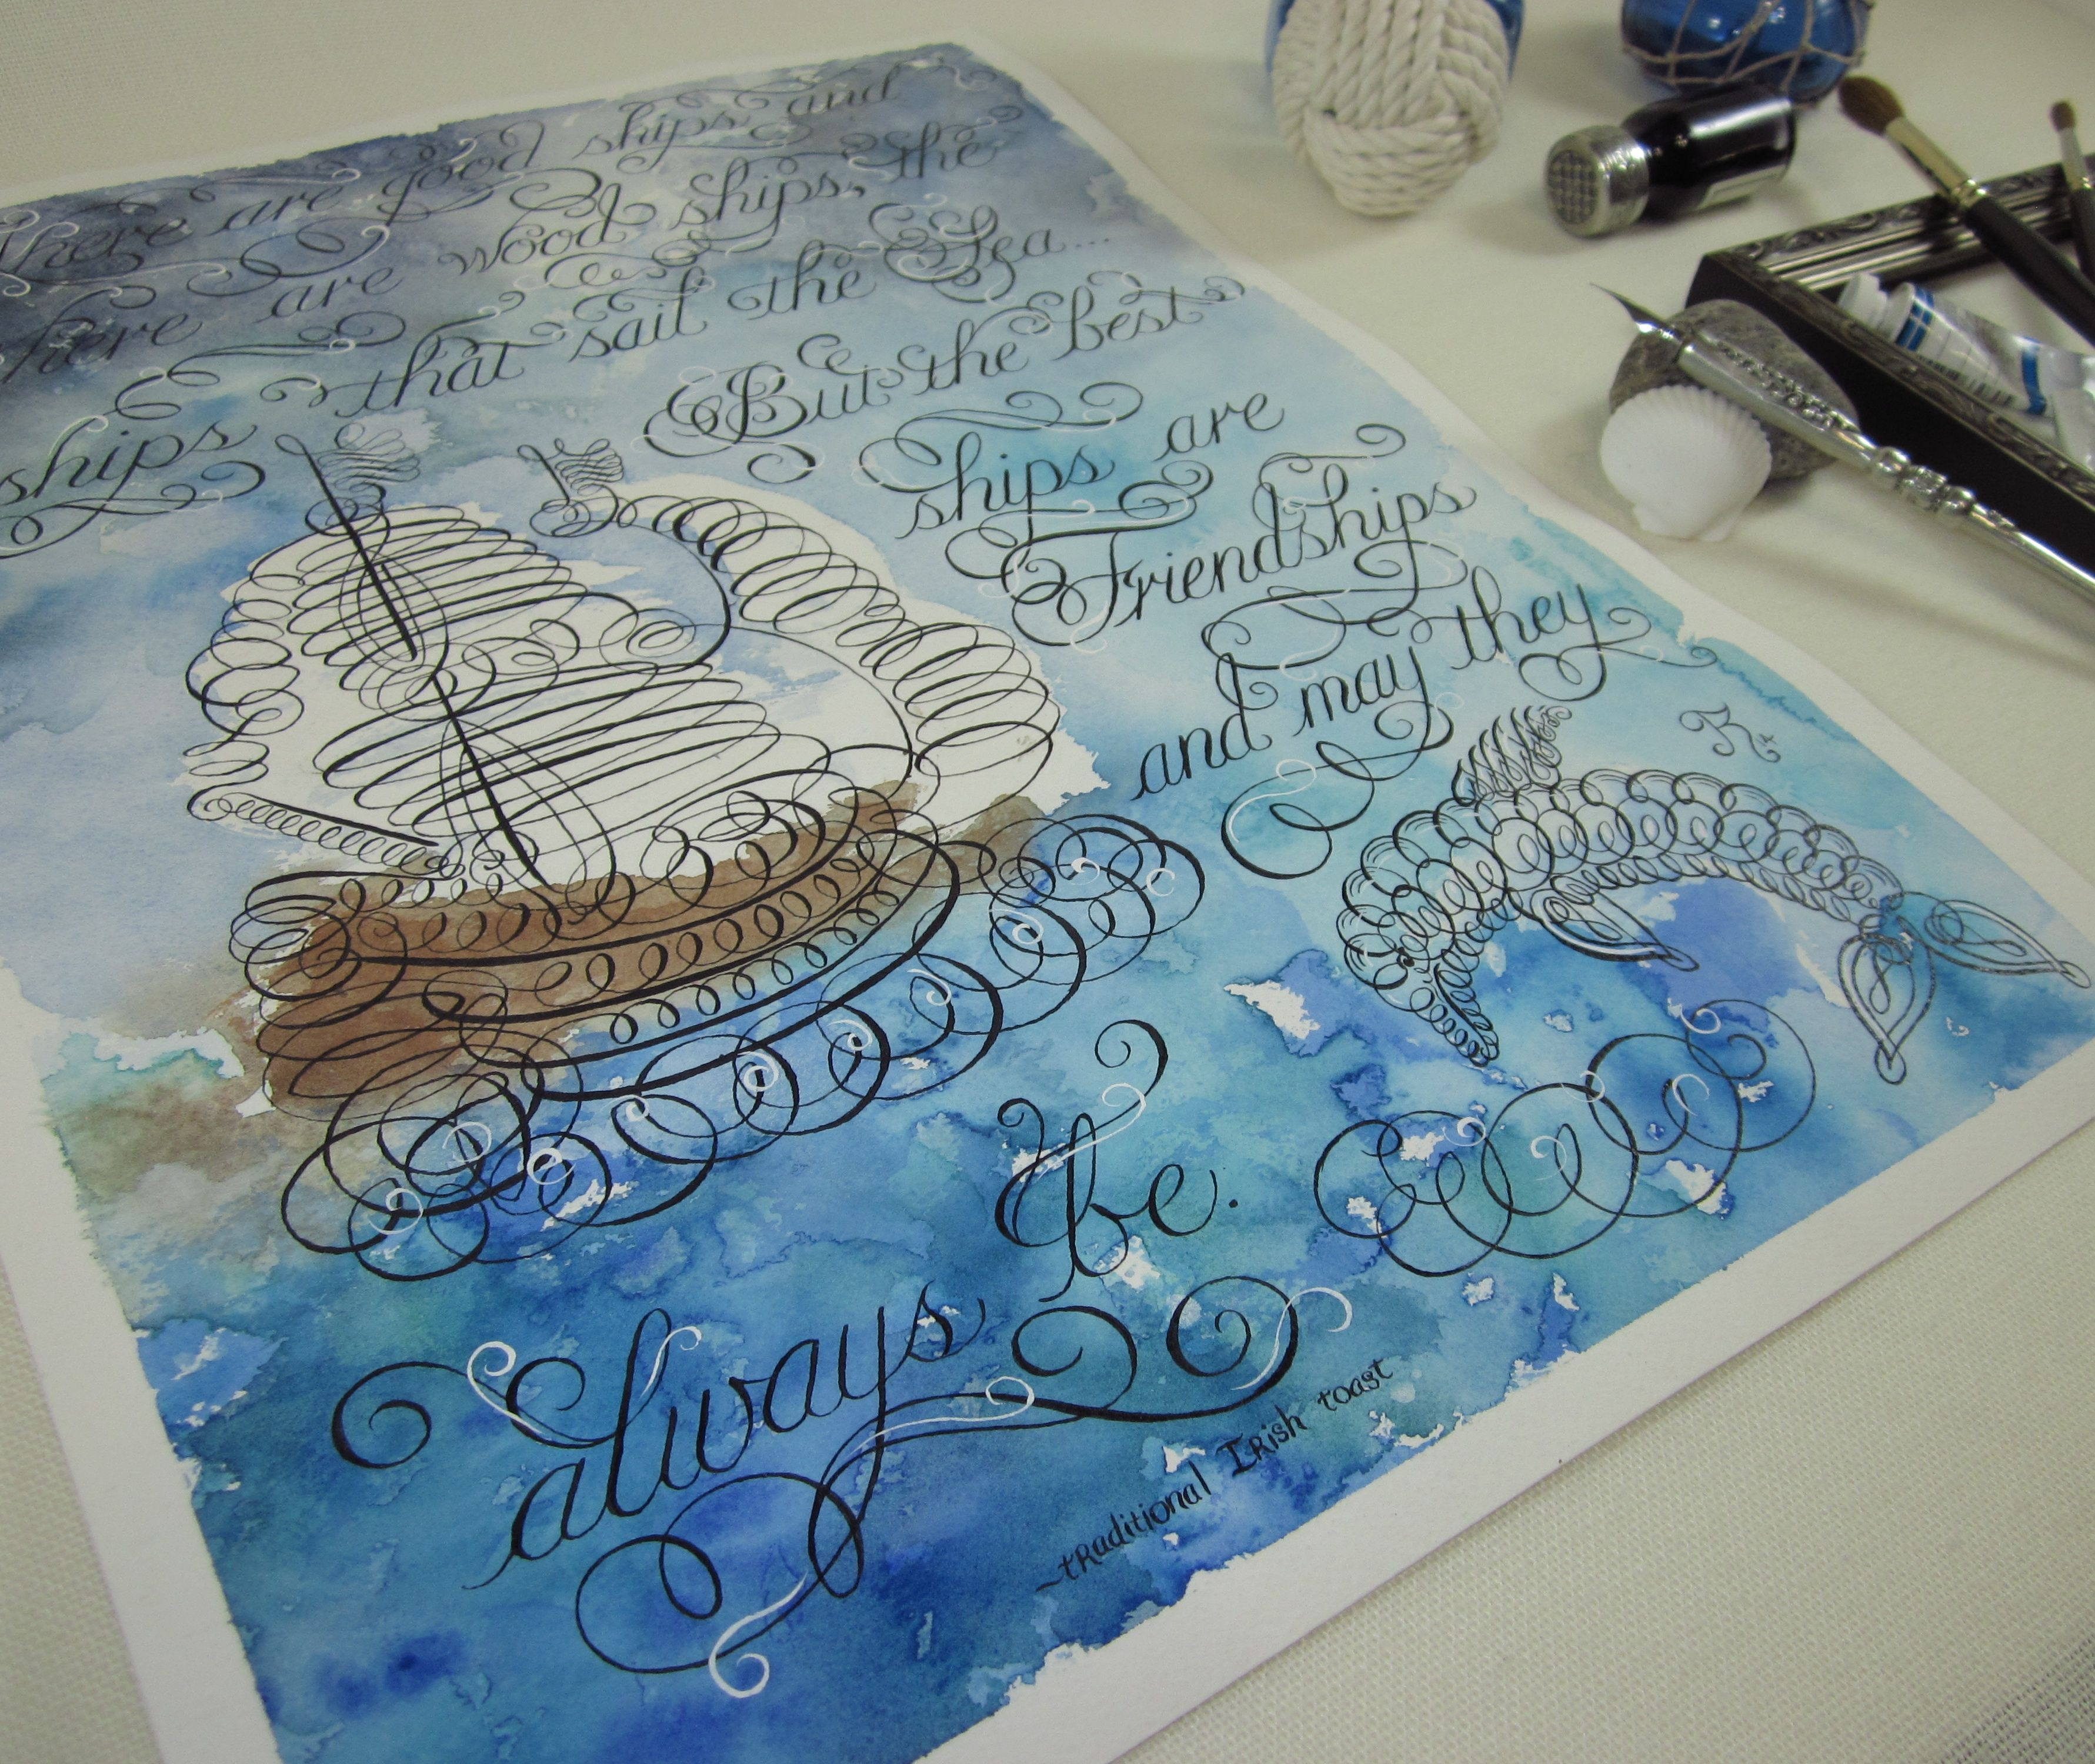 Flourished Calligraphy and Watercolor Art